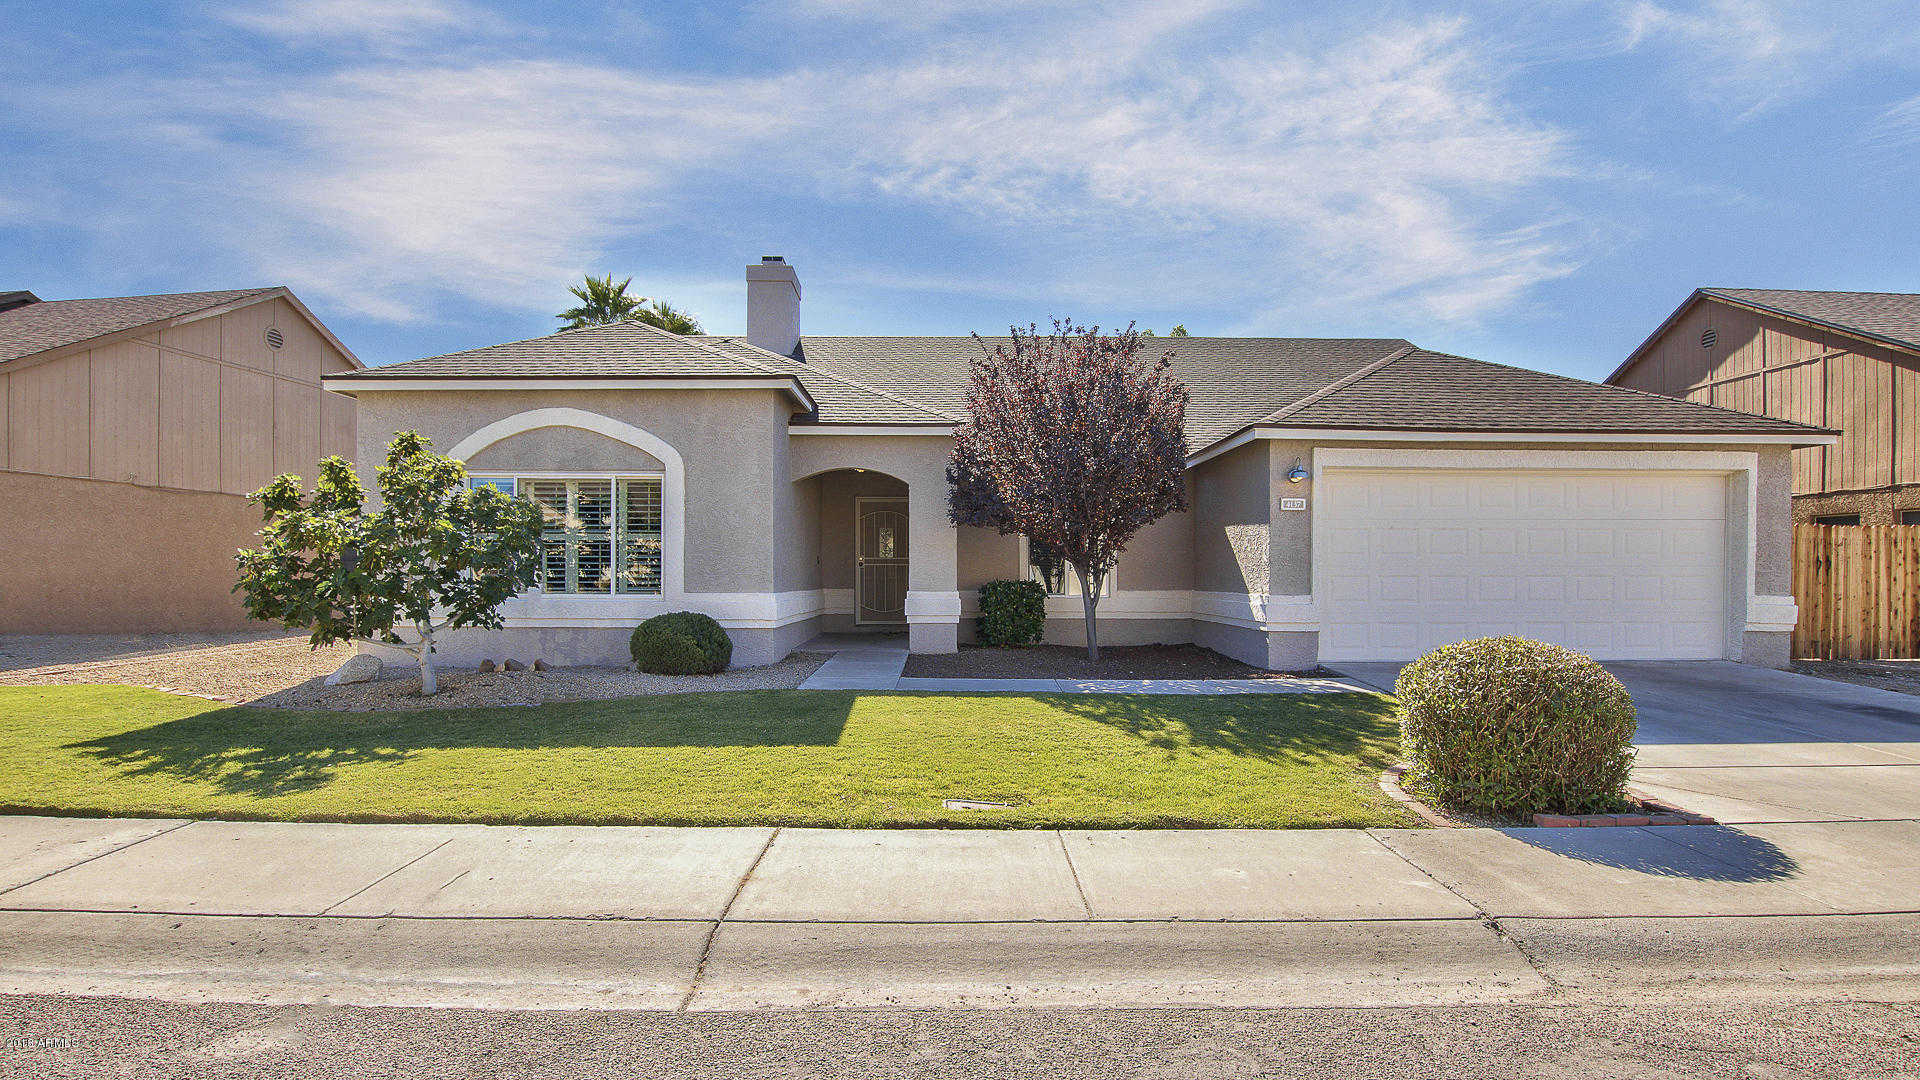 $319,900 - 4Br/2Ba - Home for Sale in Adobe Hills Lot 1-260, Glendale